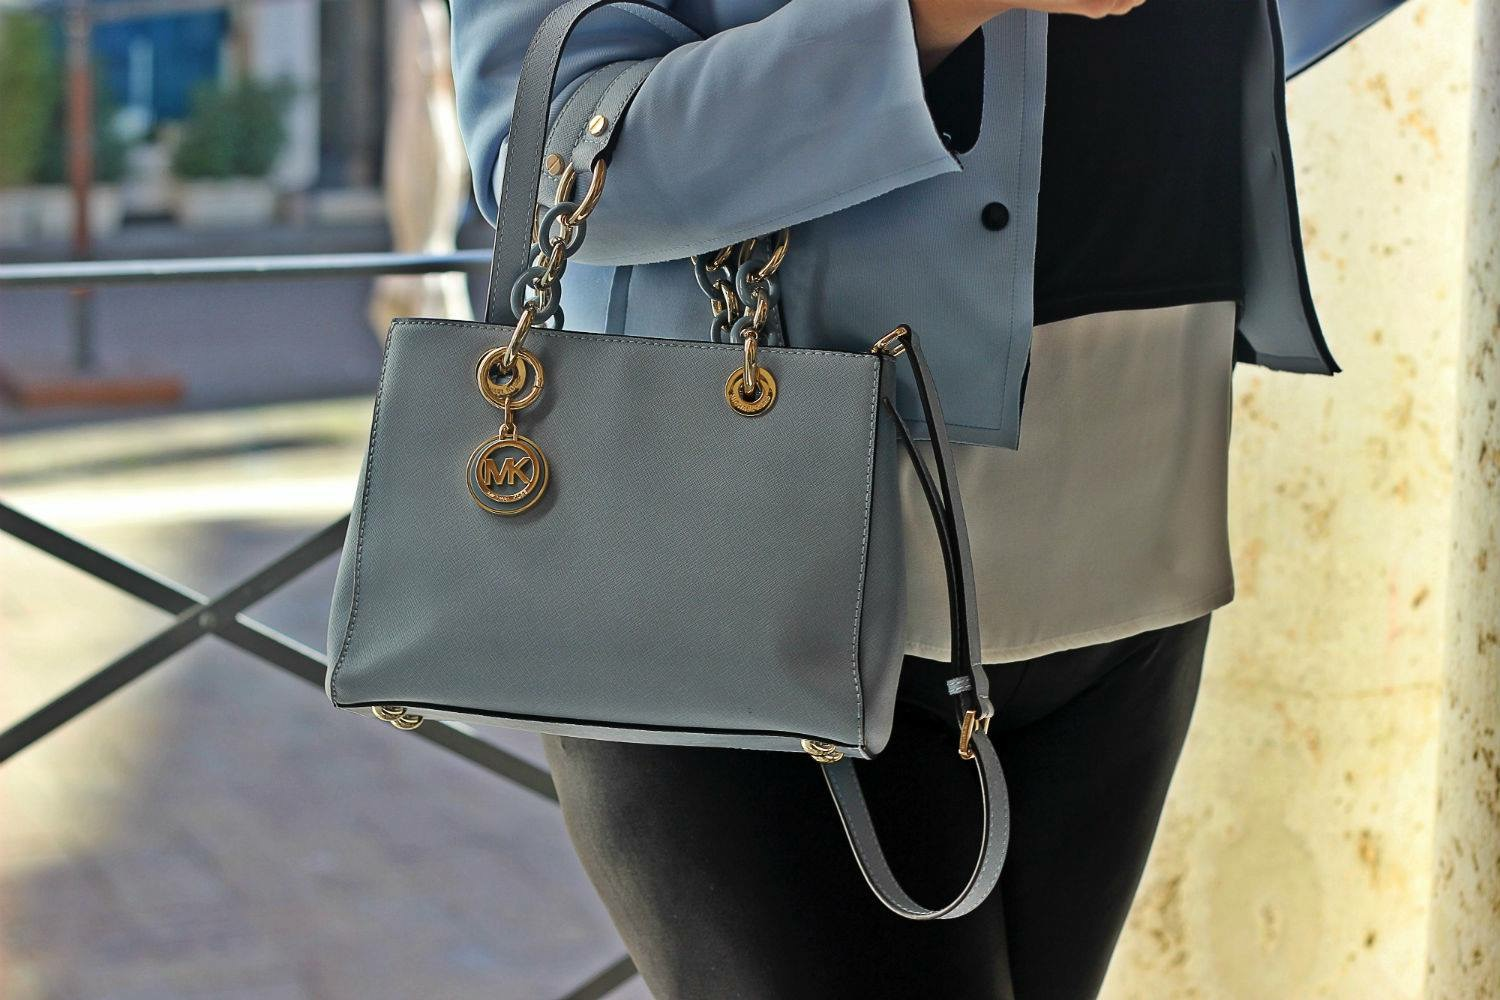 michael kors mini bag moda donna